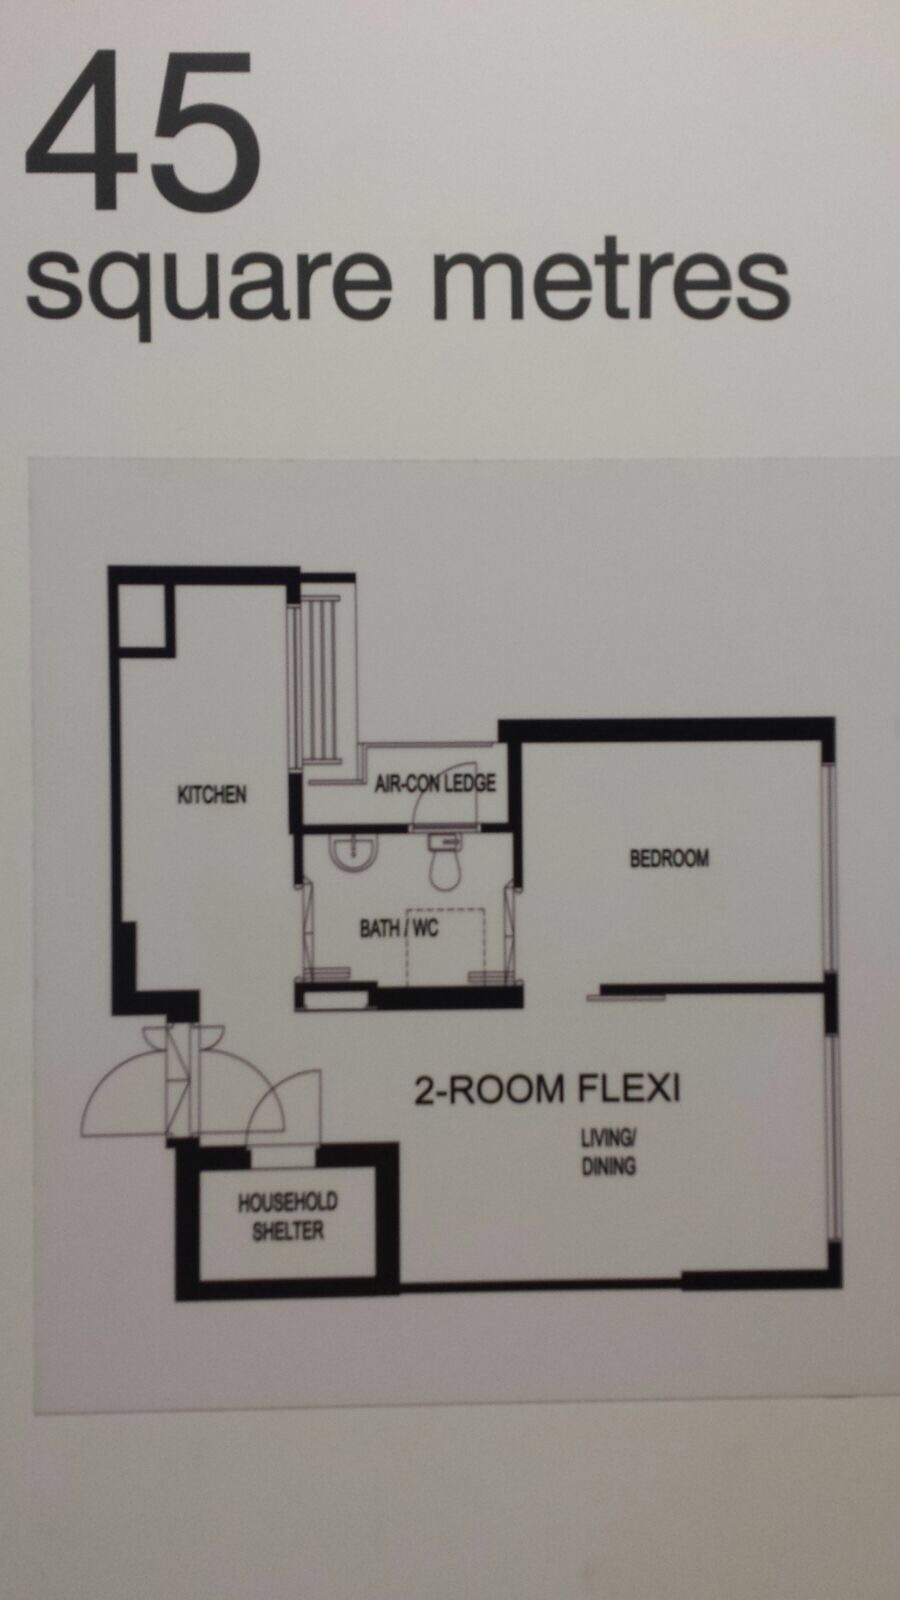 435ddf8ac71f Merits of HDB 2 room flexi scheme